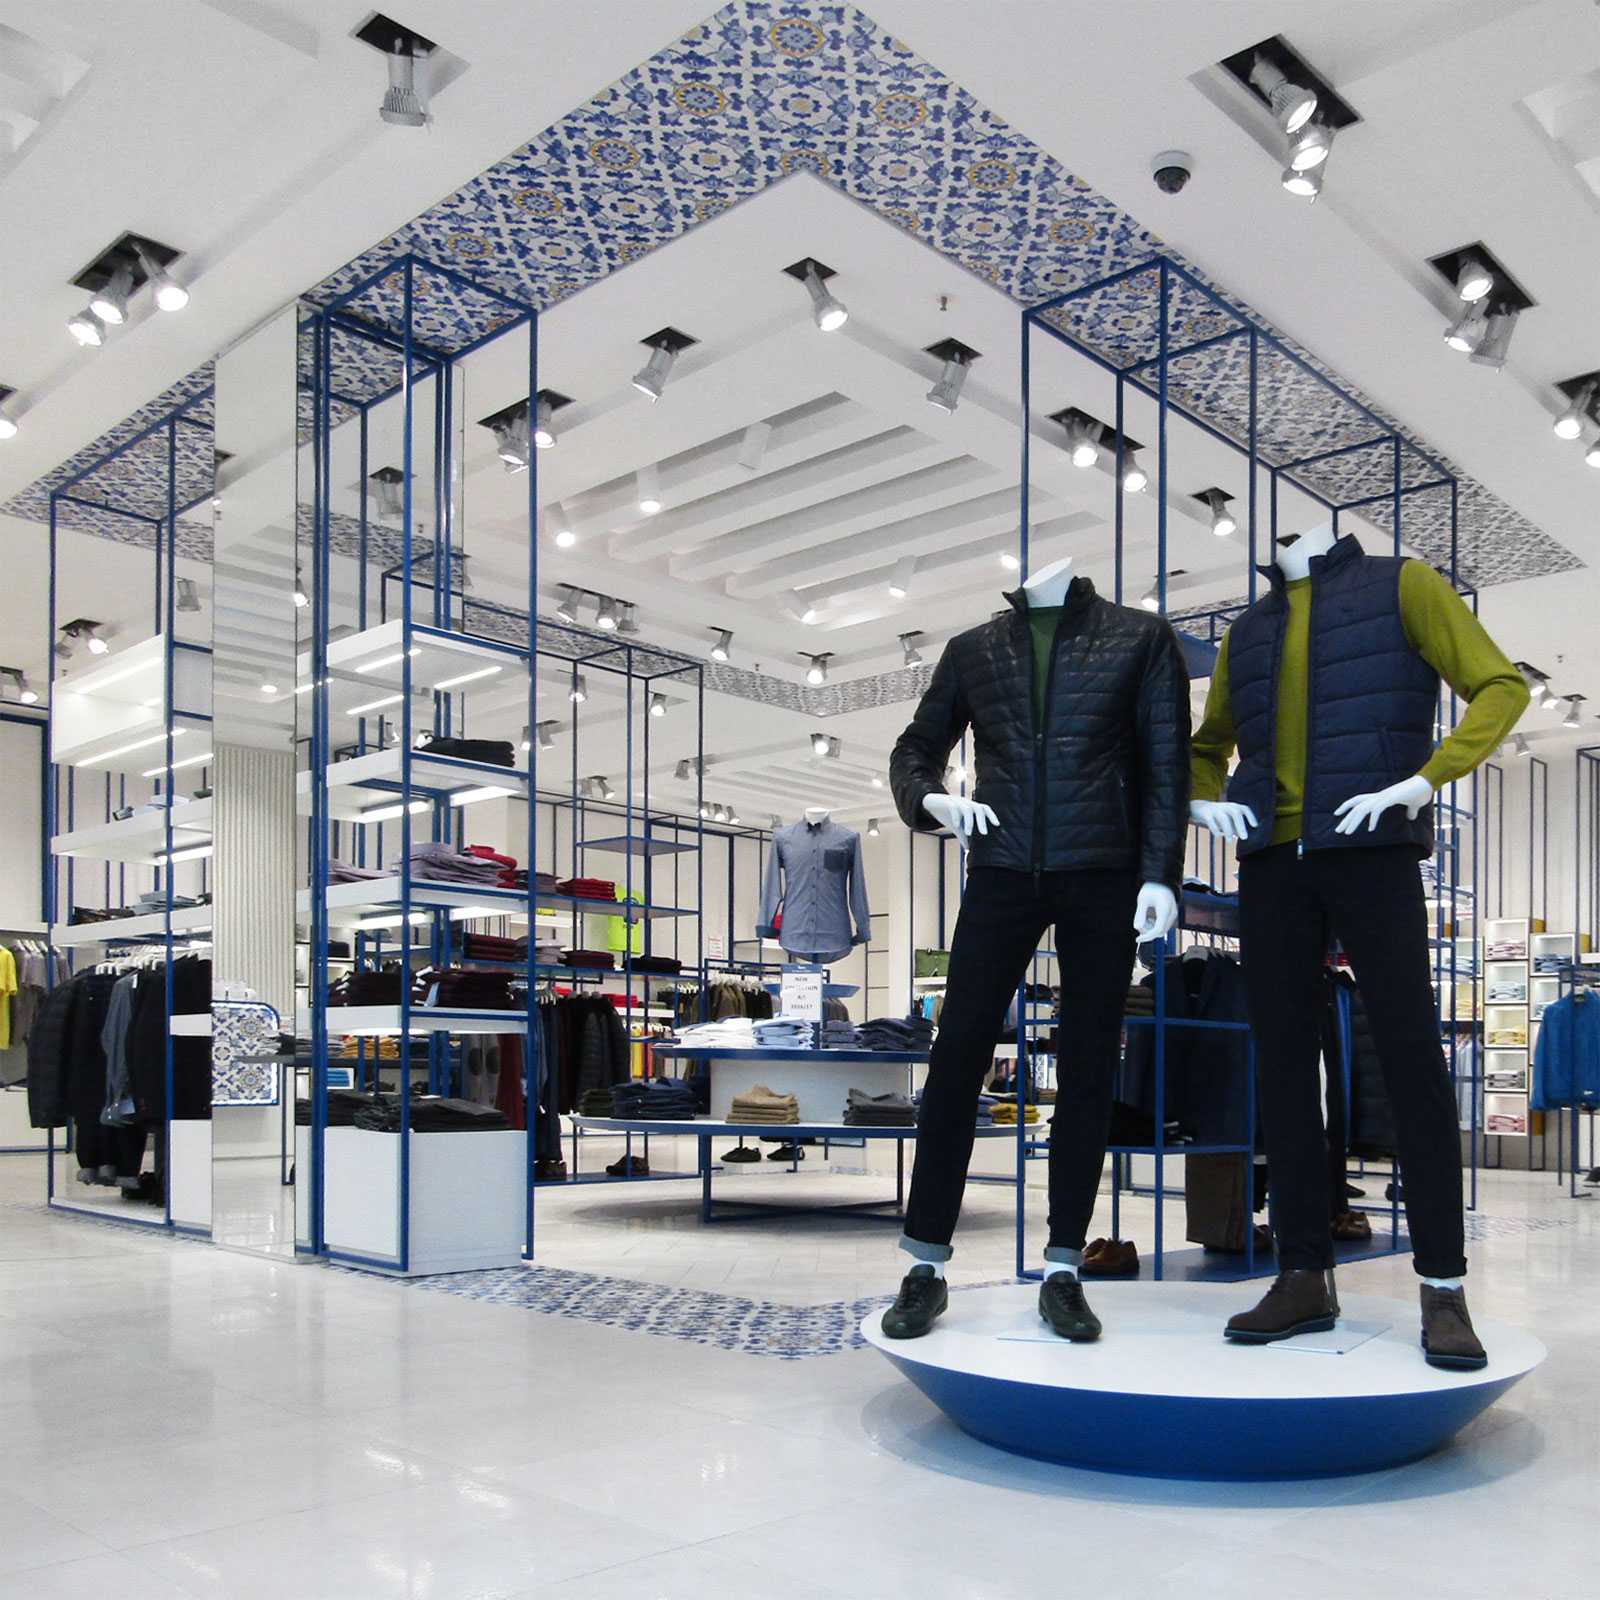 06_hb_outlet_catania_1600x1600